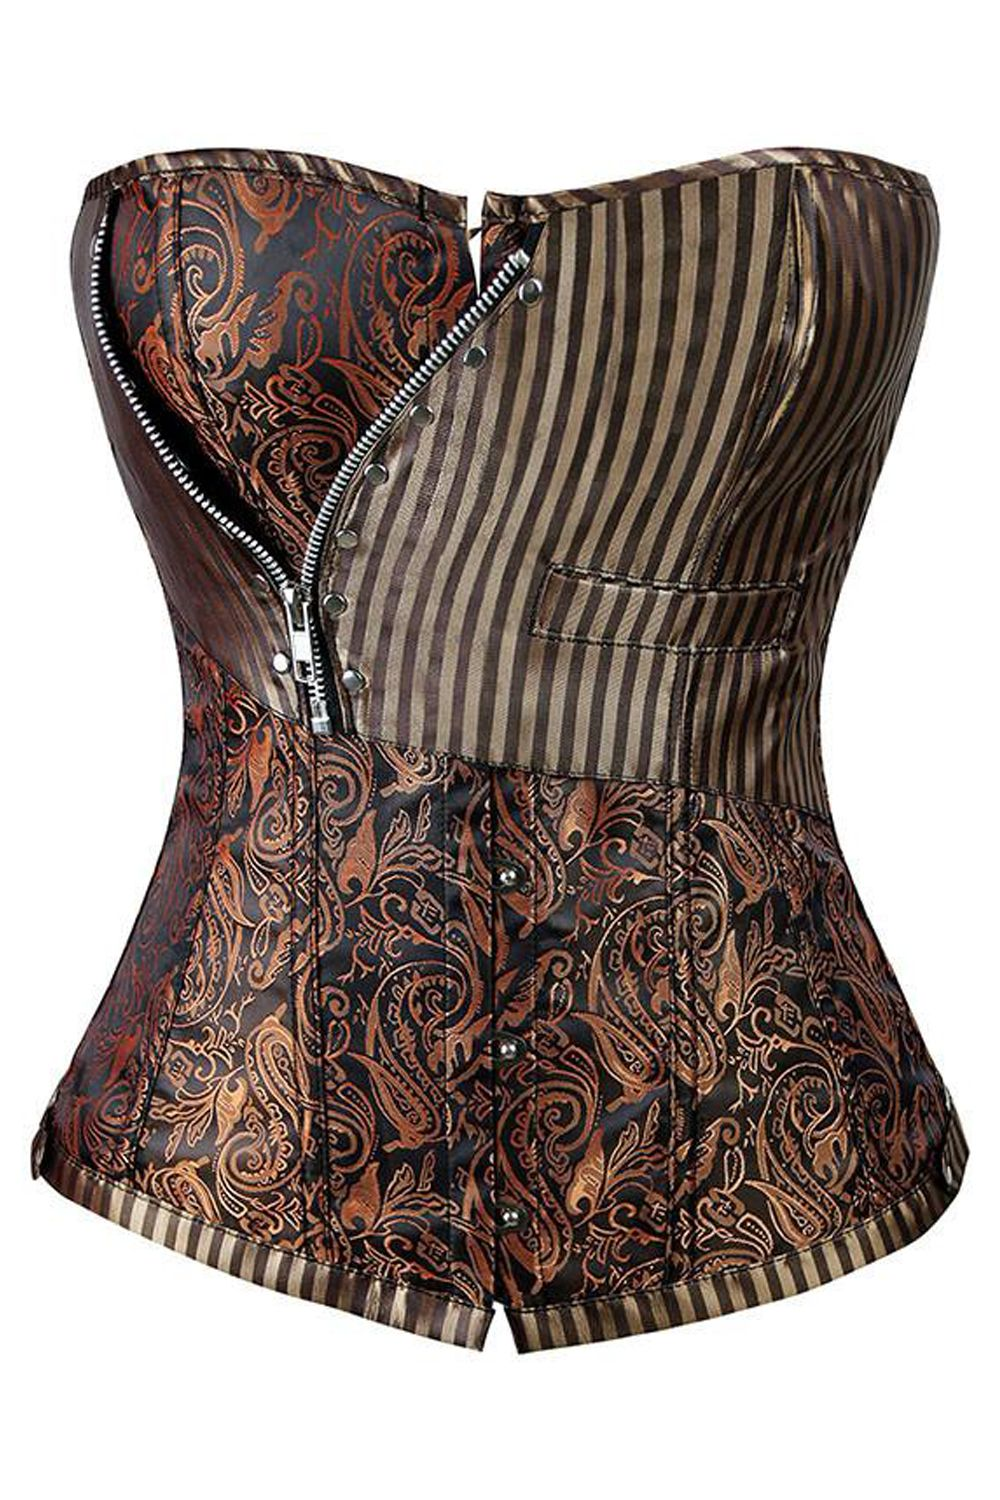 1f6e5f83472 Get the perfect steampunk look with our Atomic Brown Brocade Steampunk  Overbust Crorset. Get it